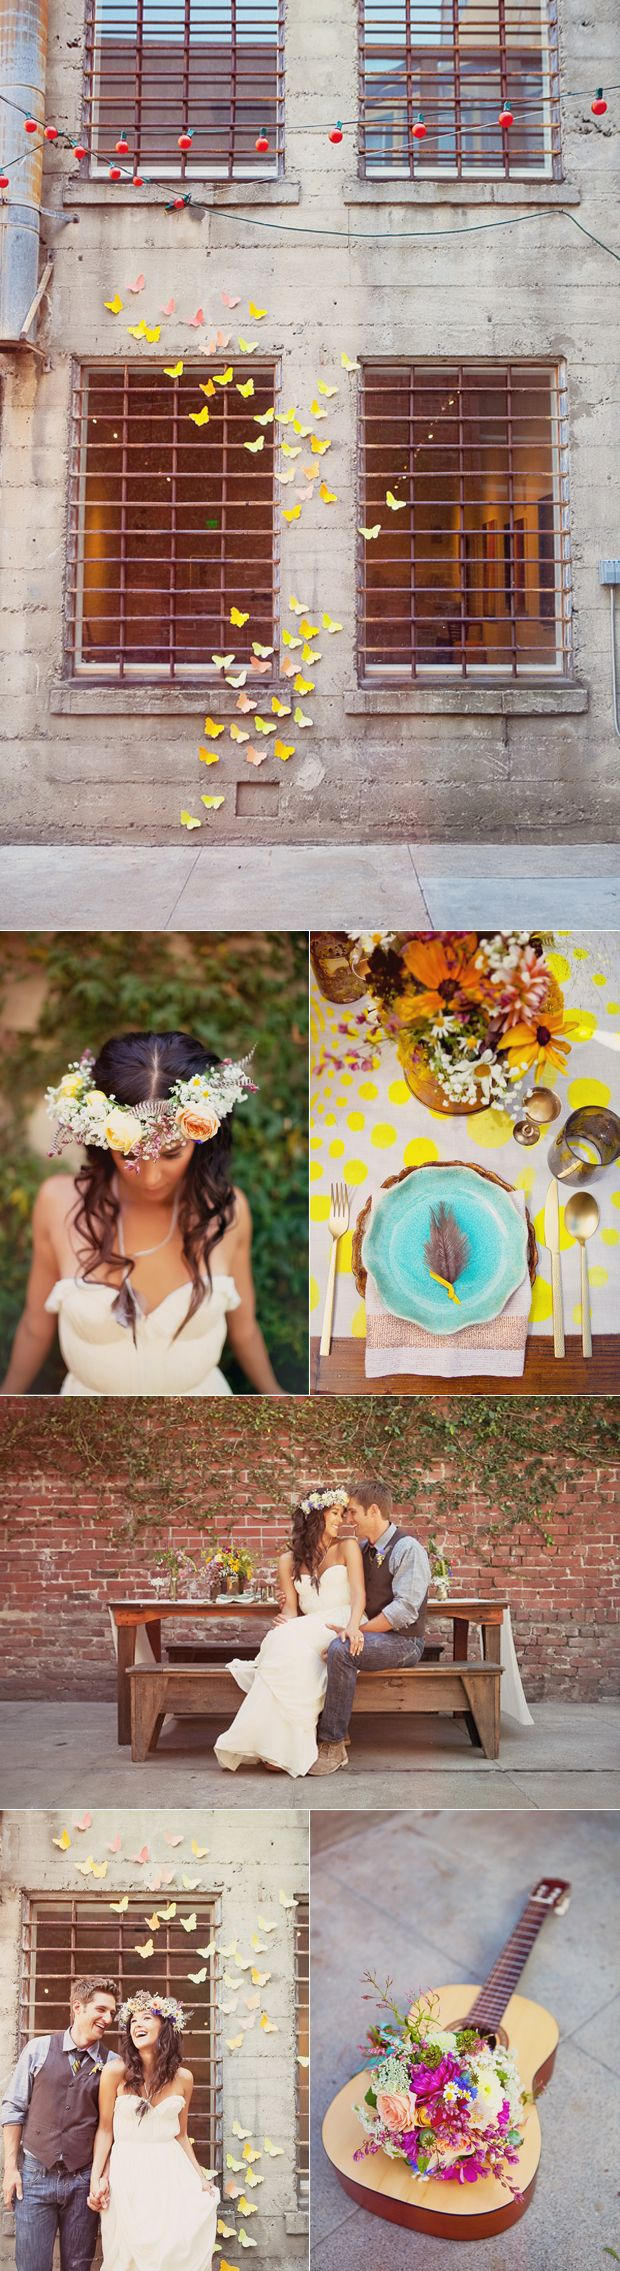 hippie wedding inspiration | And it's you | Bohemian ...